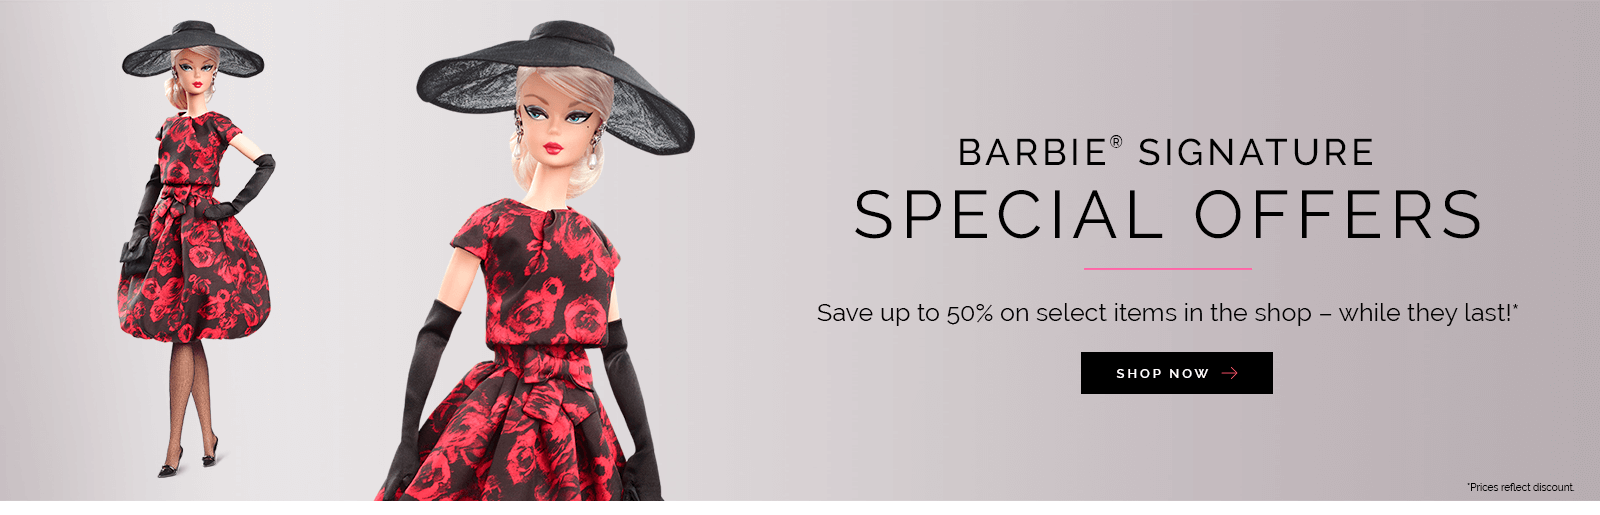 Barbie Signature Special Offers